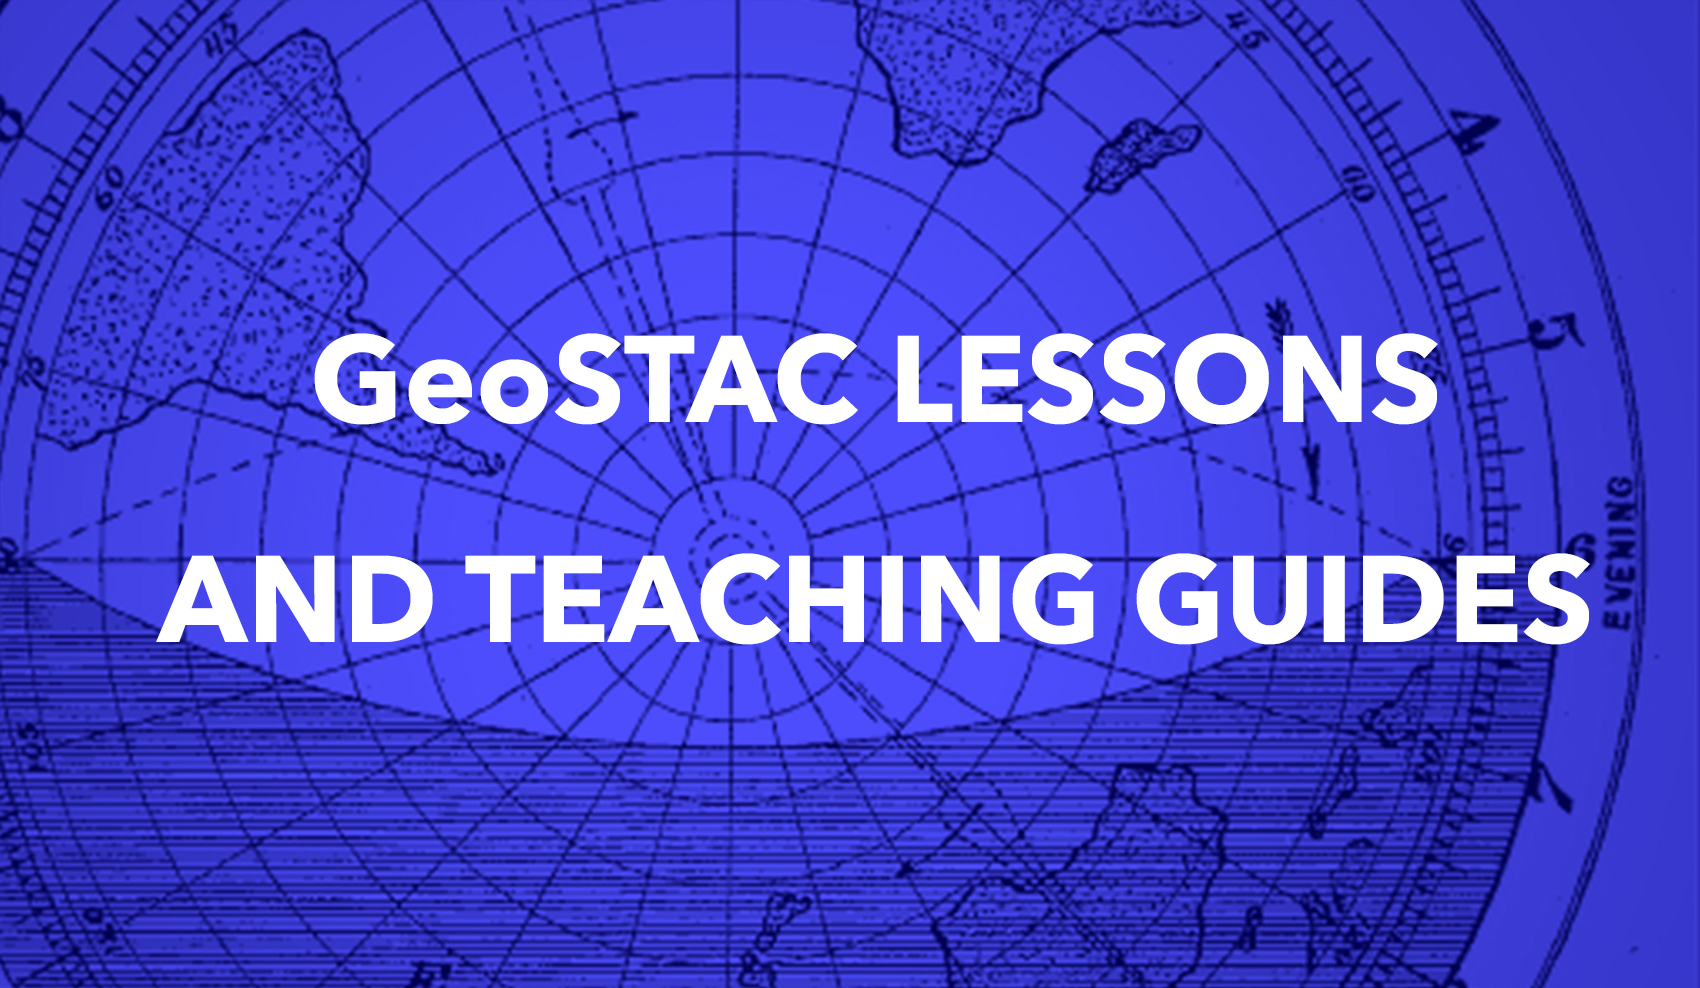 geostac_lessons_header1